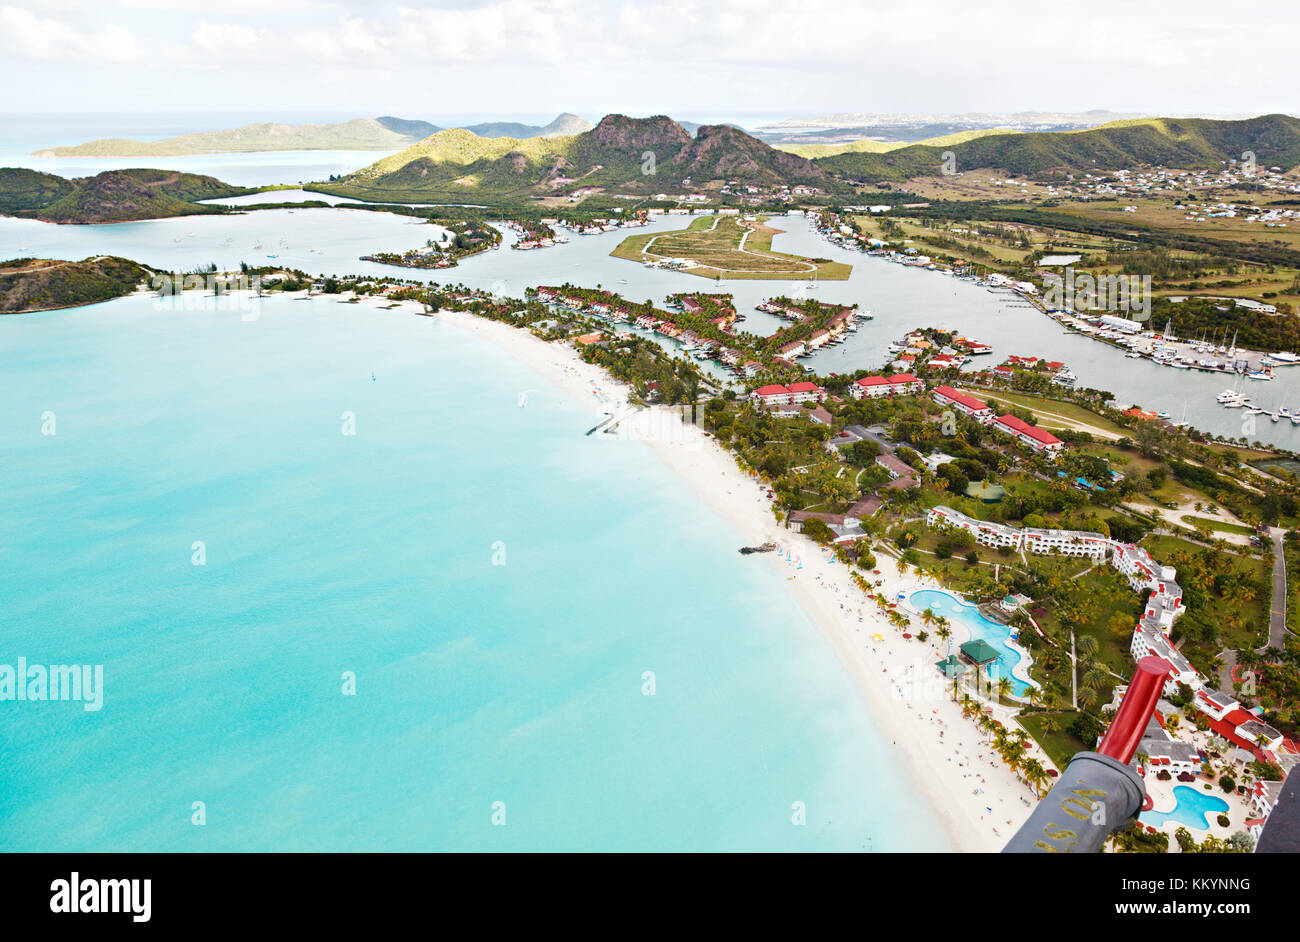 View from a helicopter to Jolly Beach and Jolly Harbor in Antigua. - Stock Image